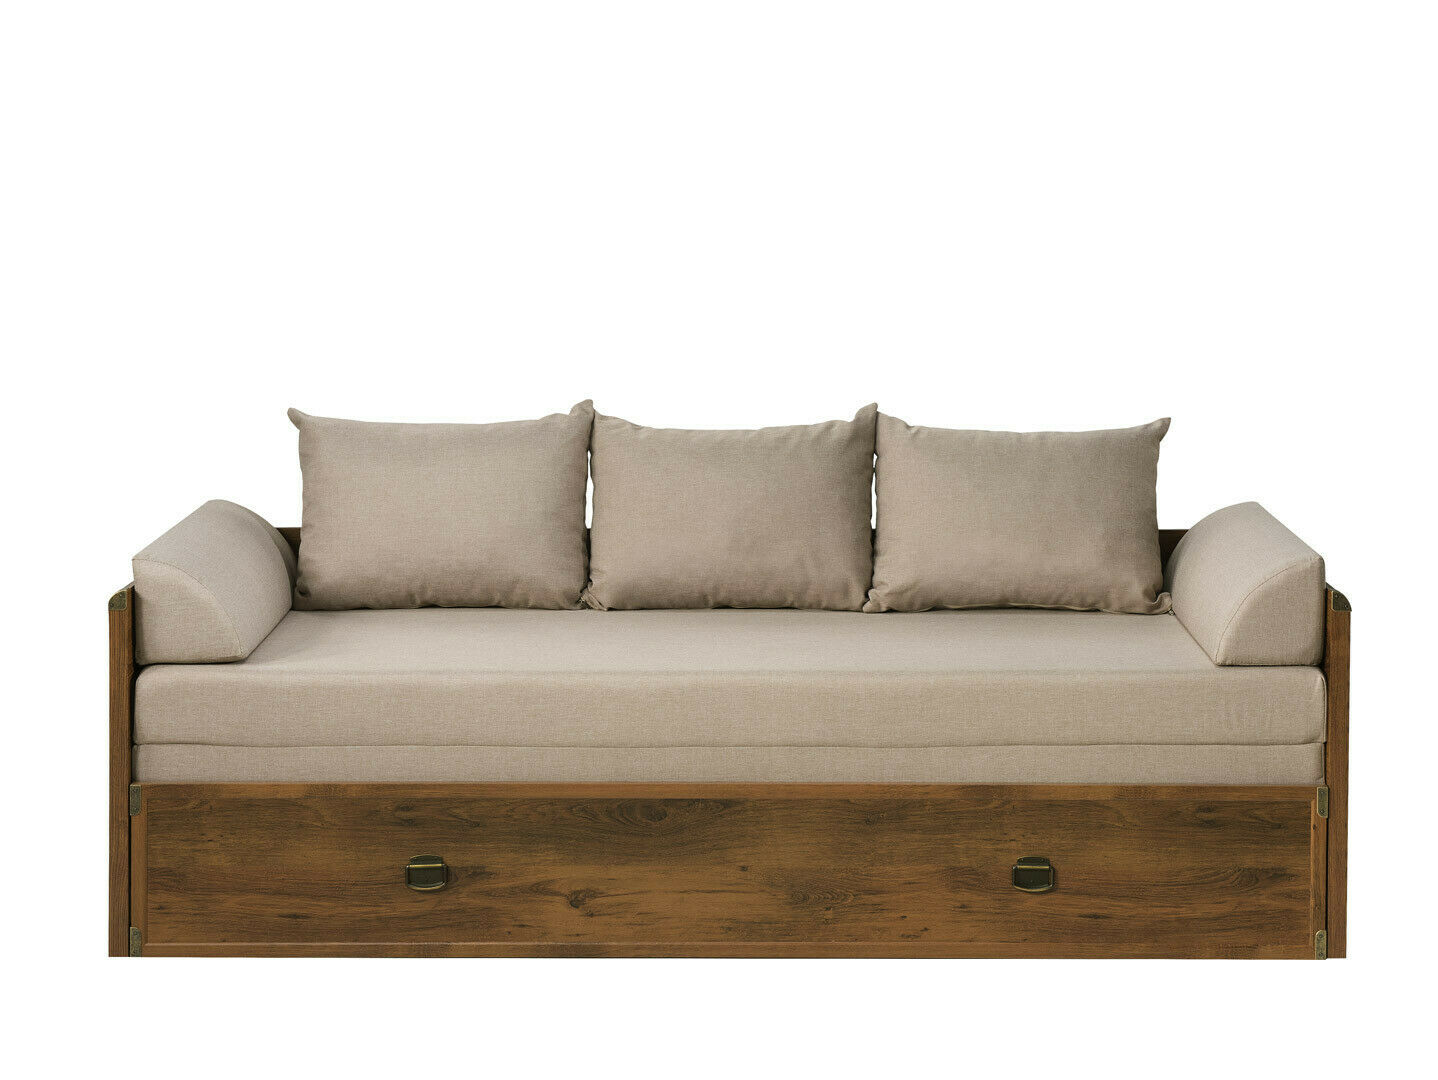 Sofa Bed Storage Beige Fabric Oak